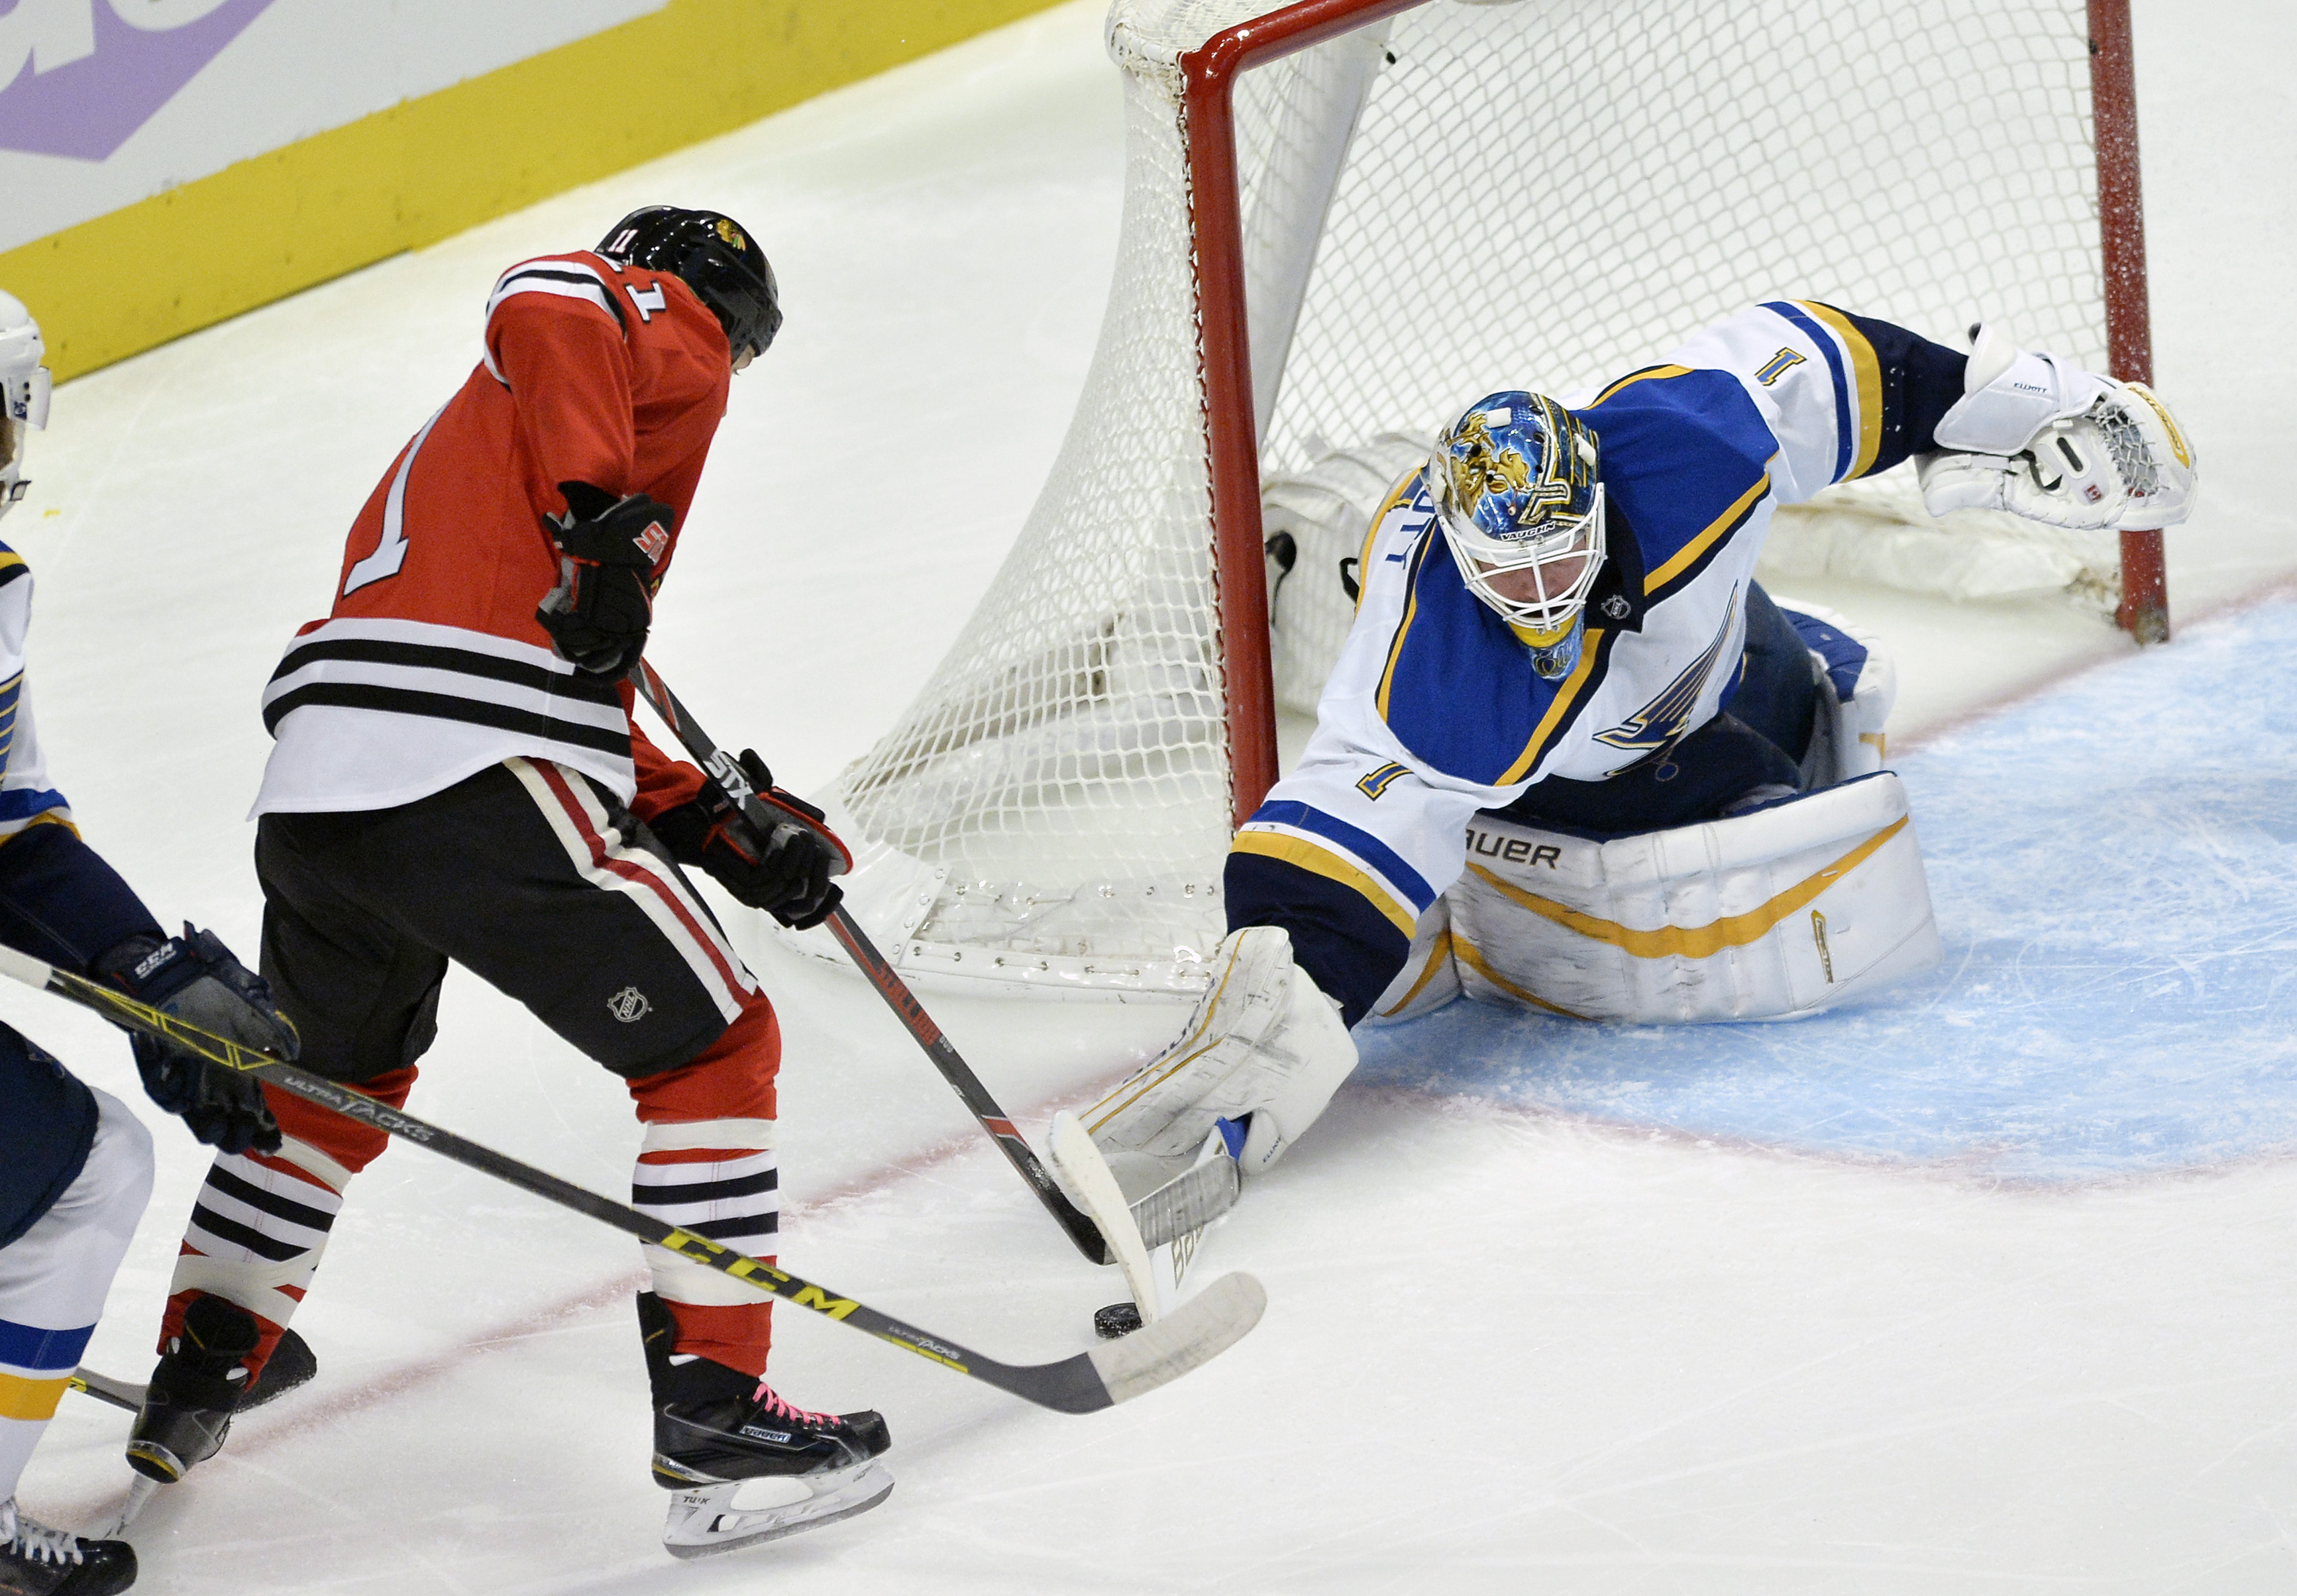 St. Louis Blues goalie Brian Elliot (1), makes a save against Chicago Blackhawks' Andrew Desjardins (11), during the first period of a hockey game Wednesday, Nov. 4, 2015, in Chicago. (AP Photo/Paul Beaty)